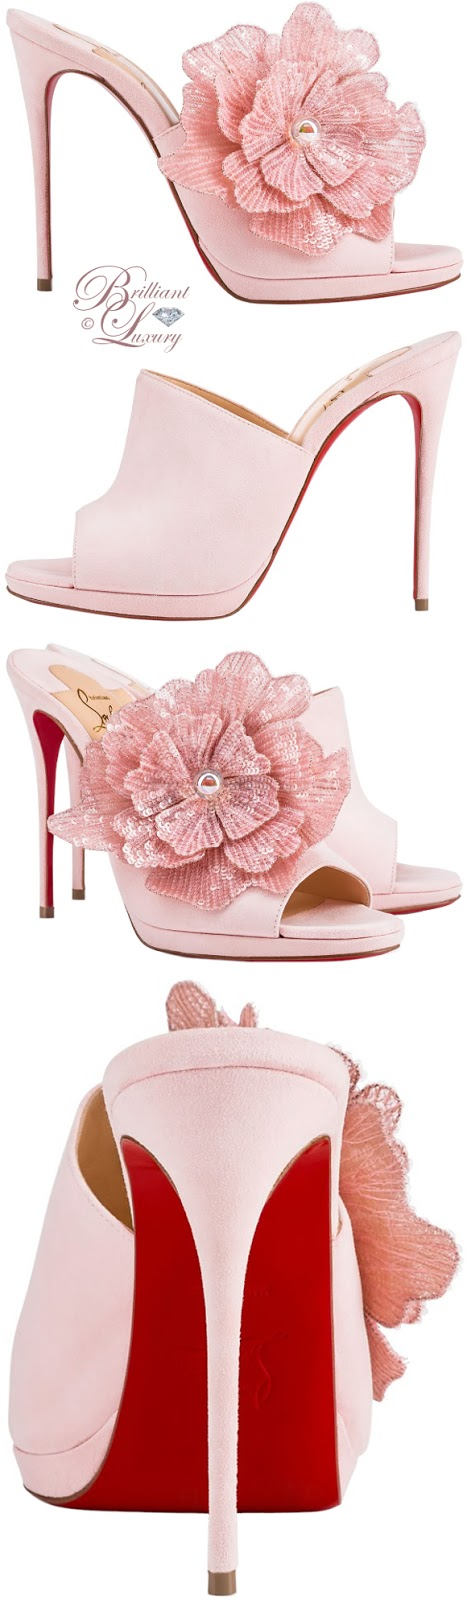 Brilliant Luxury ♦ Christian Louboutin high heel Submuline in soft pompadour suede finished with a single handmade sequin flower accessory on the right foot